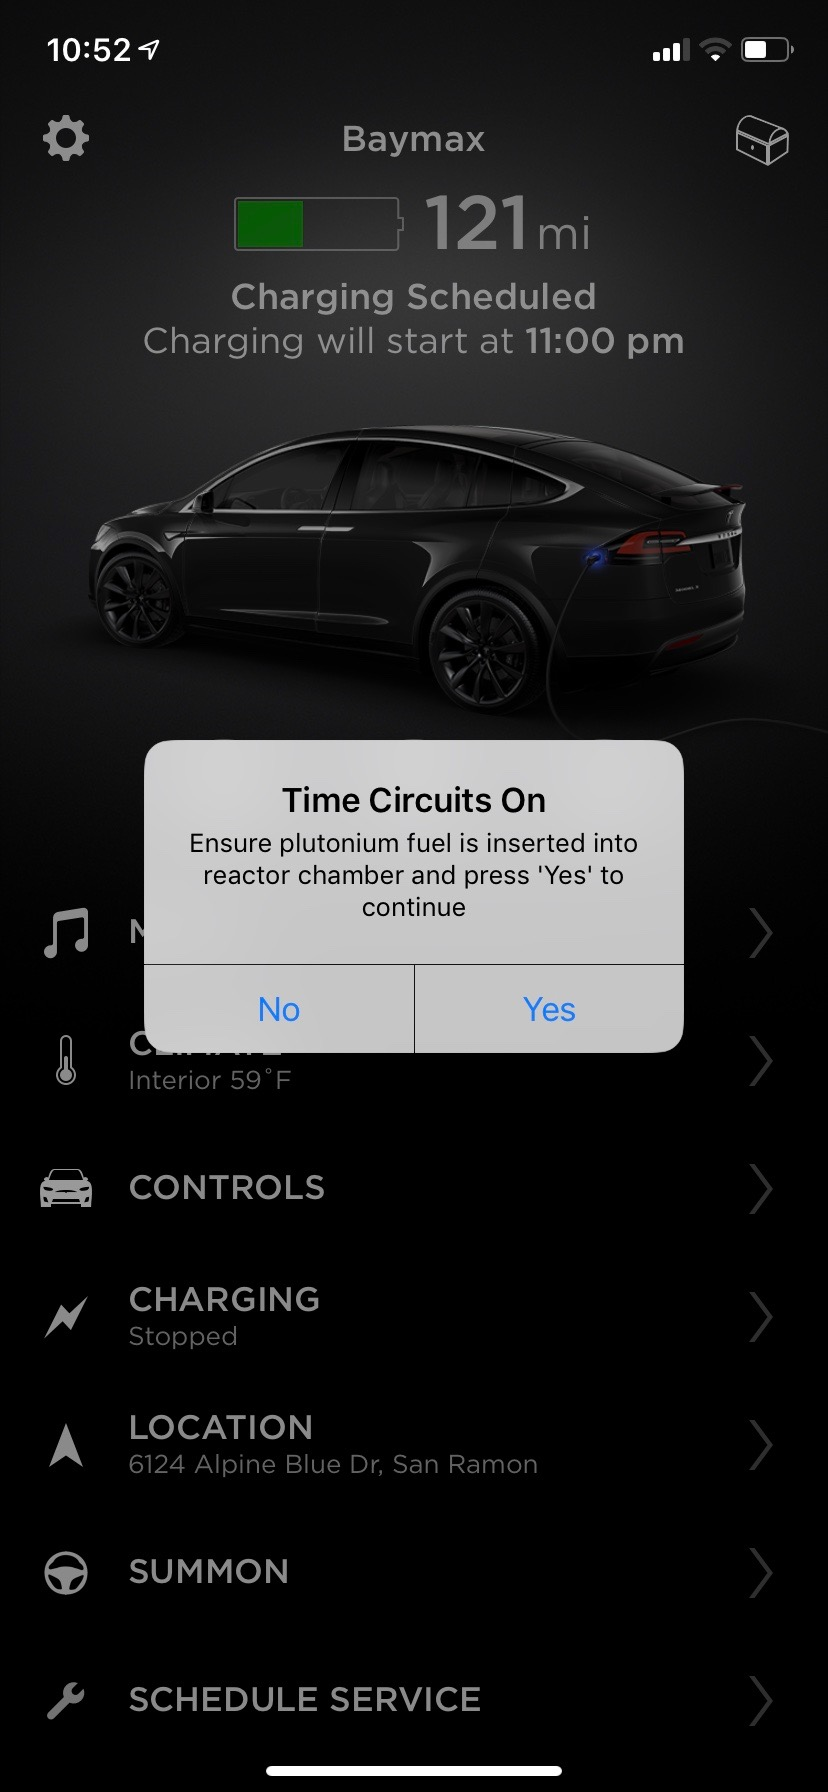 tesla-app-back-to-the-future-easter-egg